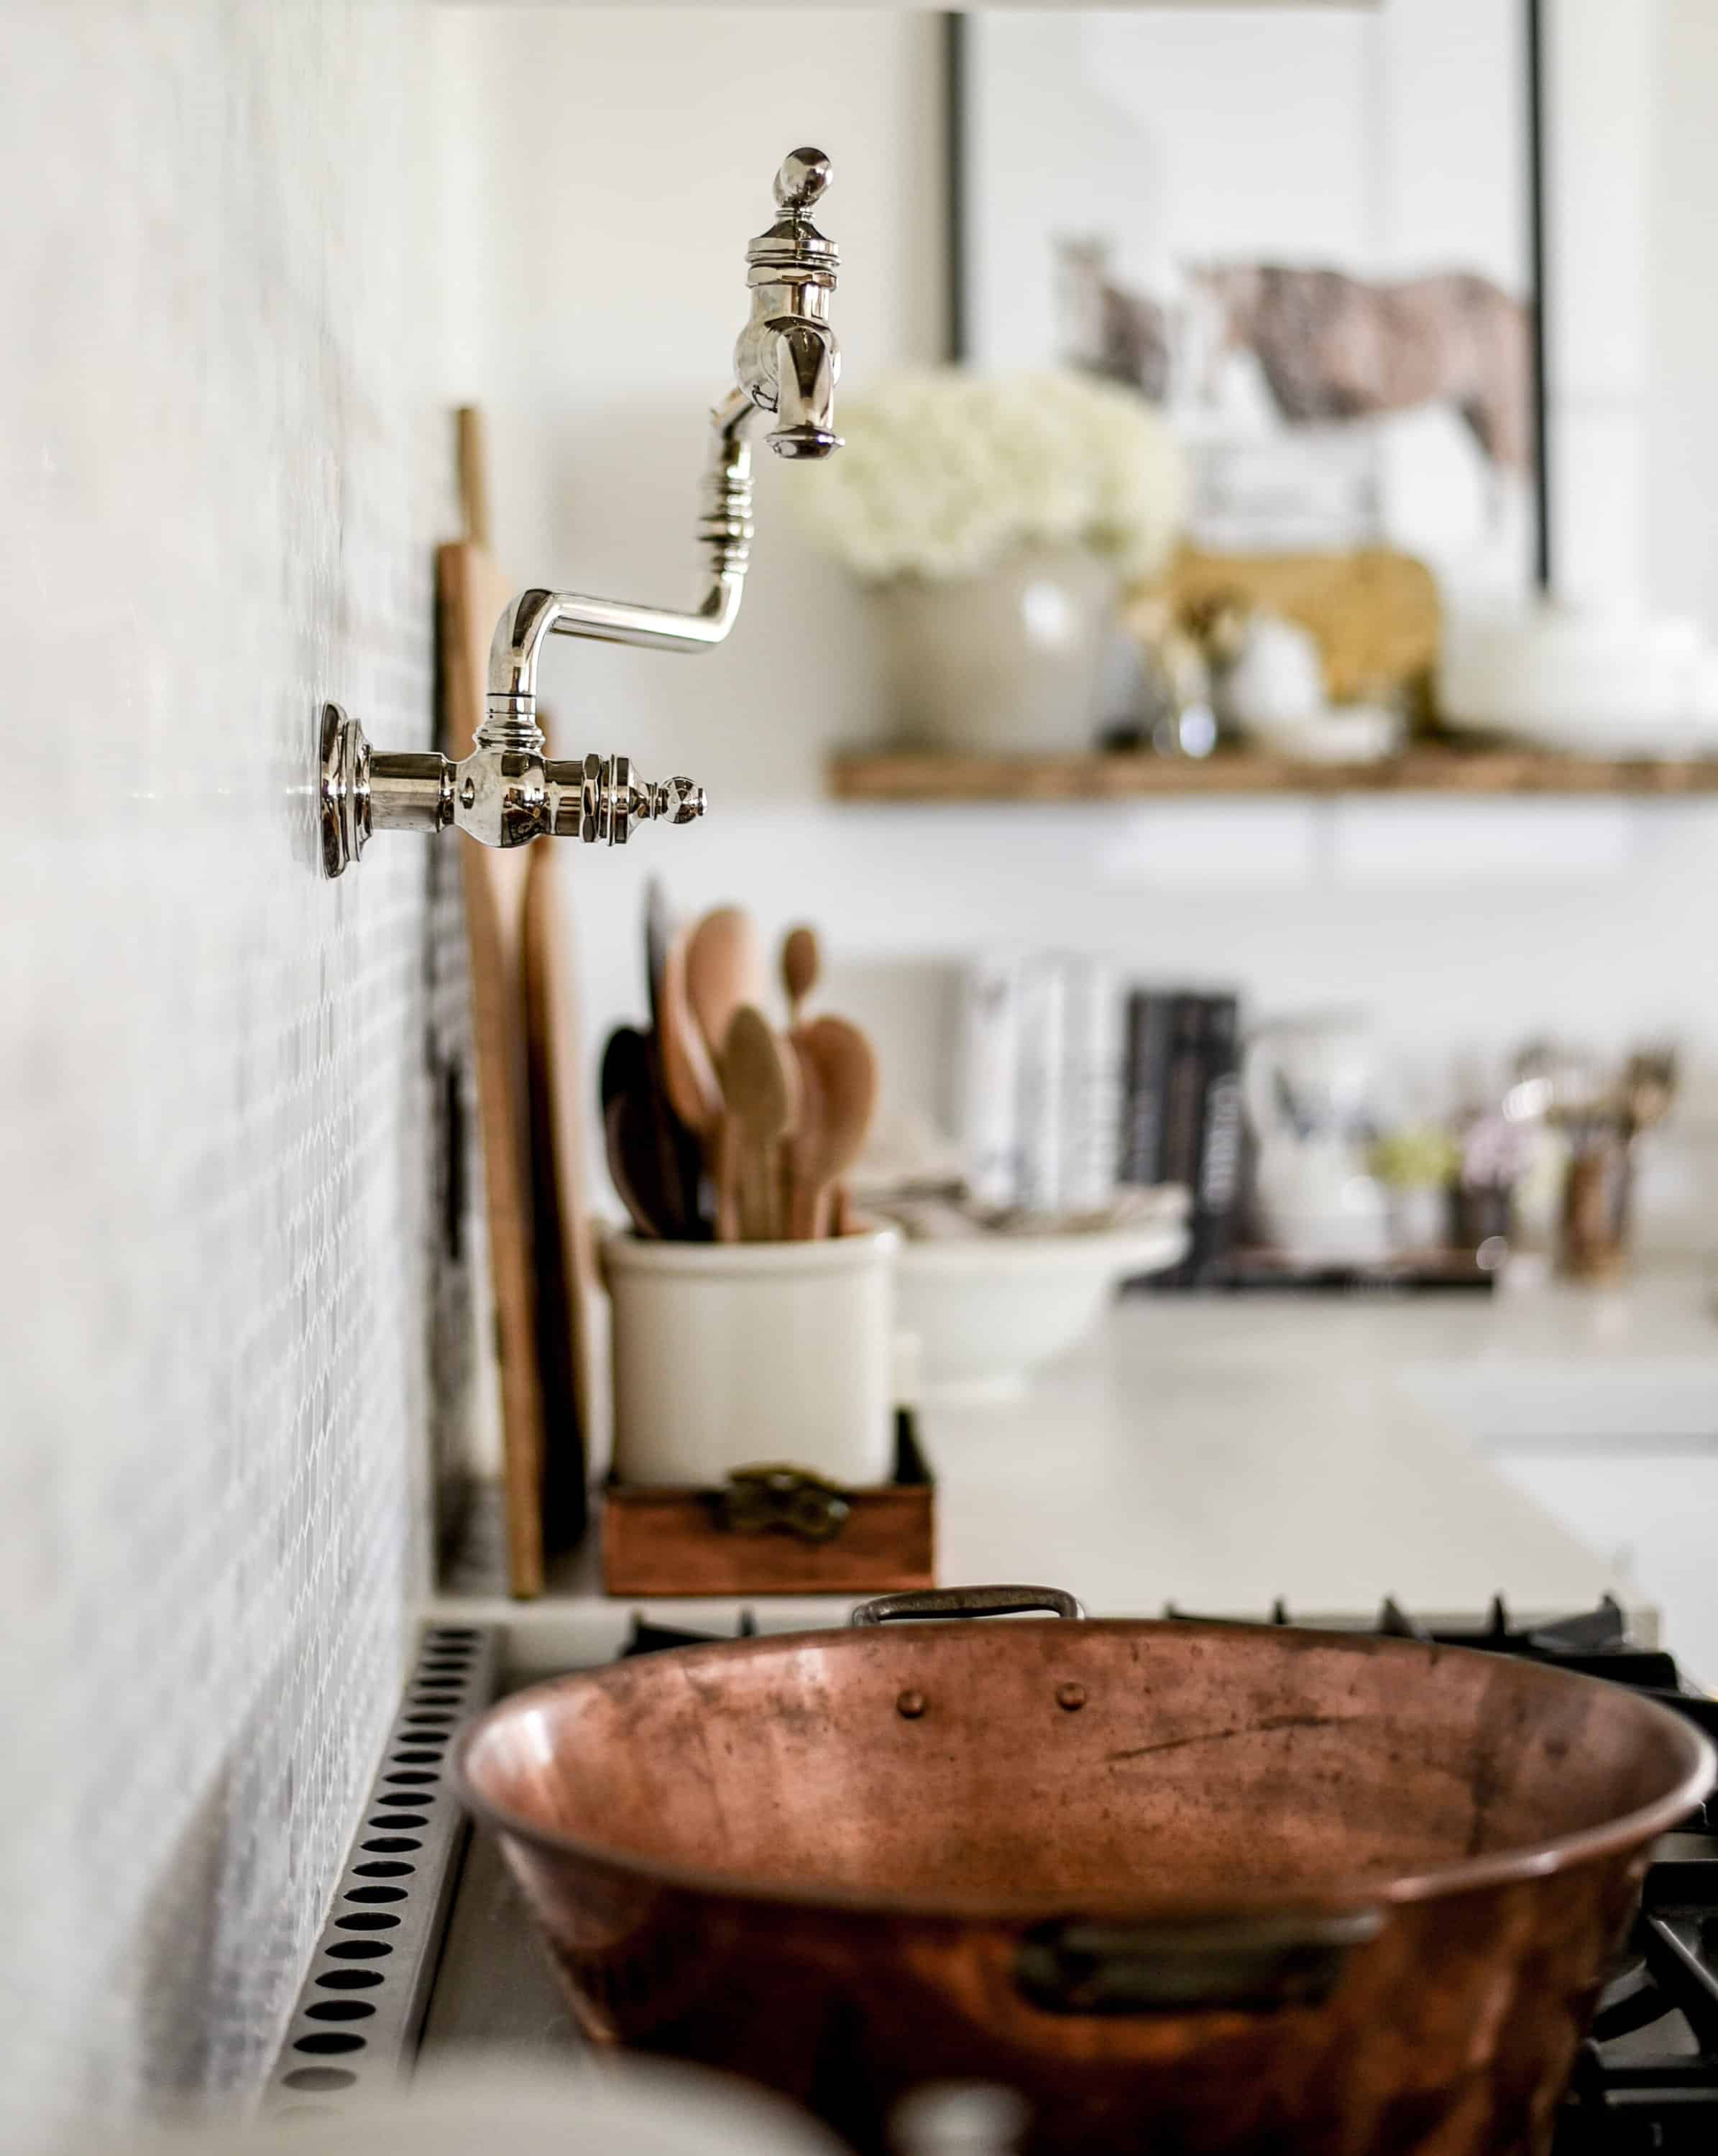 I mentioned that when we began remodeling, someone from the Kohler team reached out to see if I might be interested in collaborating with them in our kitchen. Since I had already fallen in love with their extra wide, extra deep apron front sink, I was happy to jump on board to create our farmhouse kitchen with their designs.